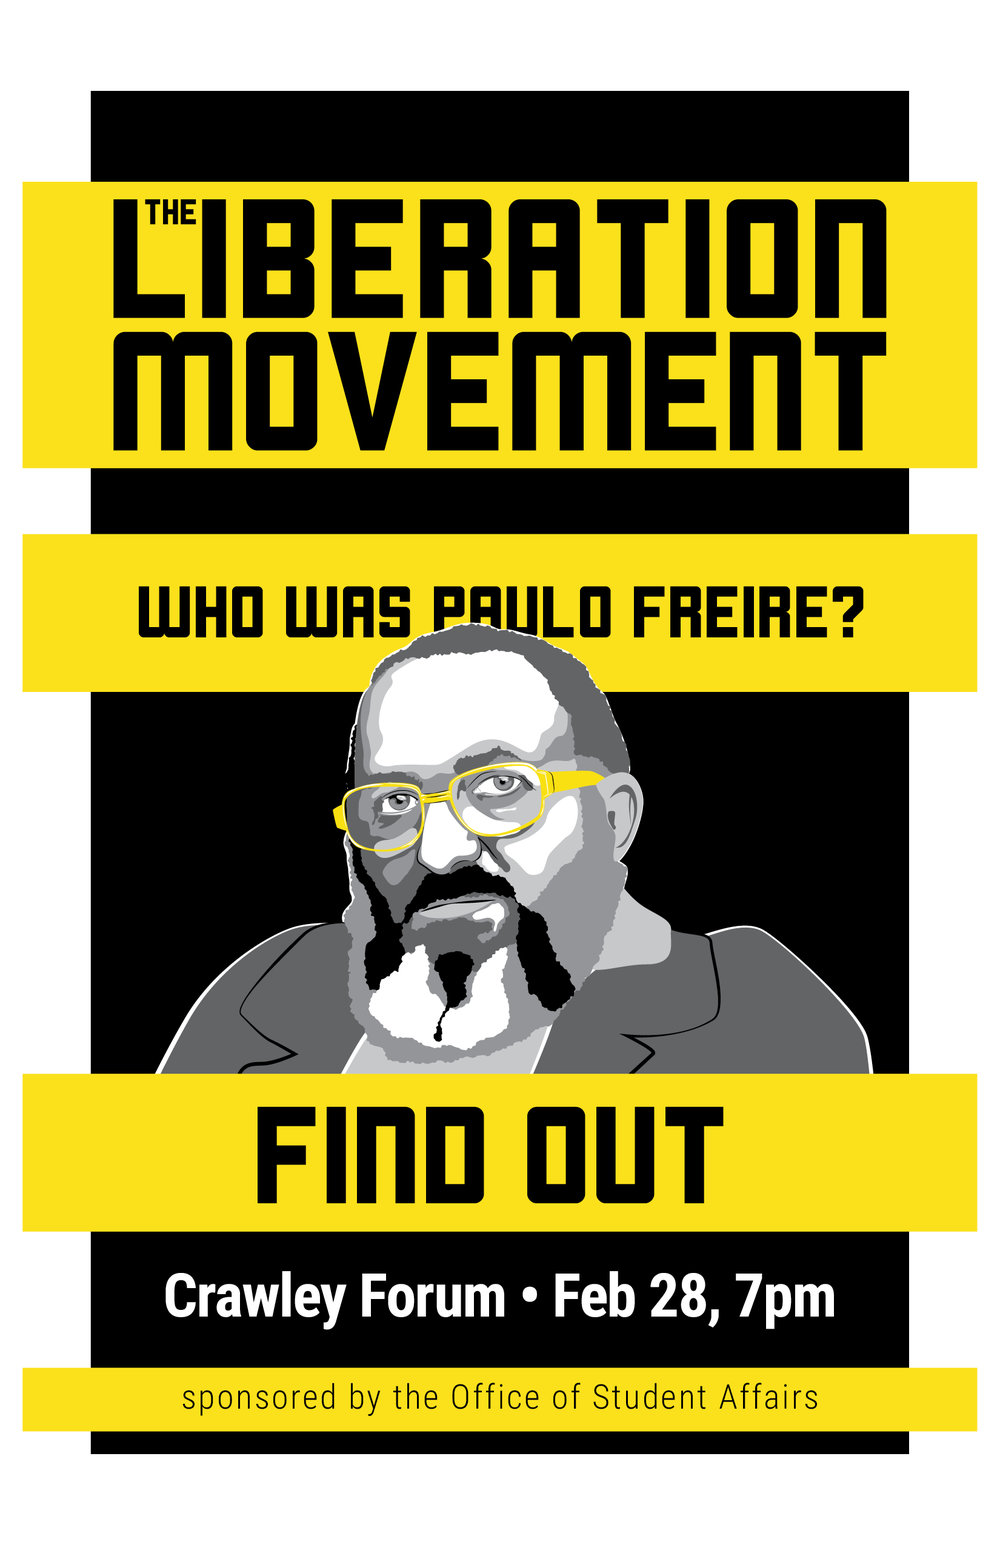 Liberation Movement: Friere